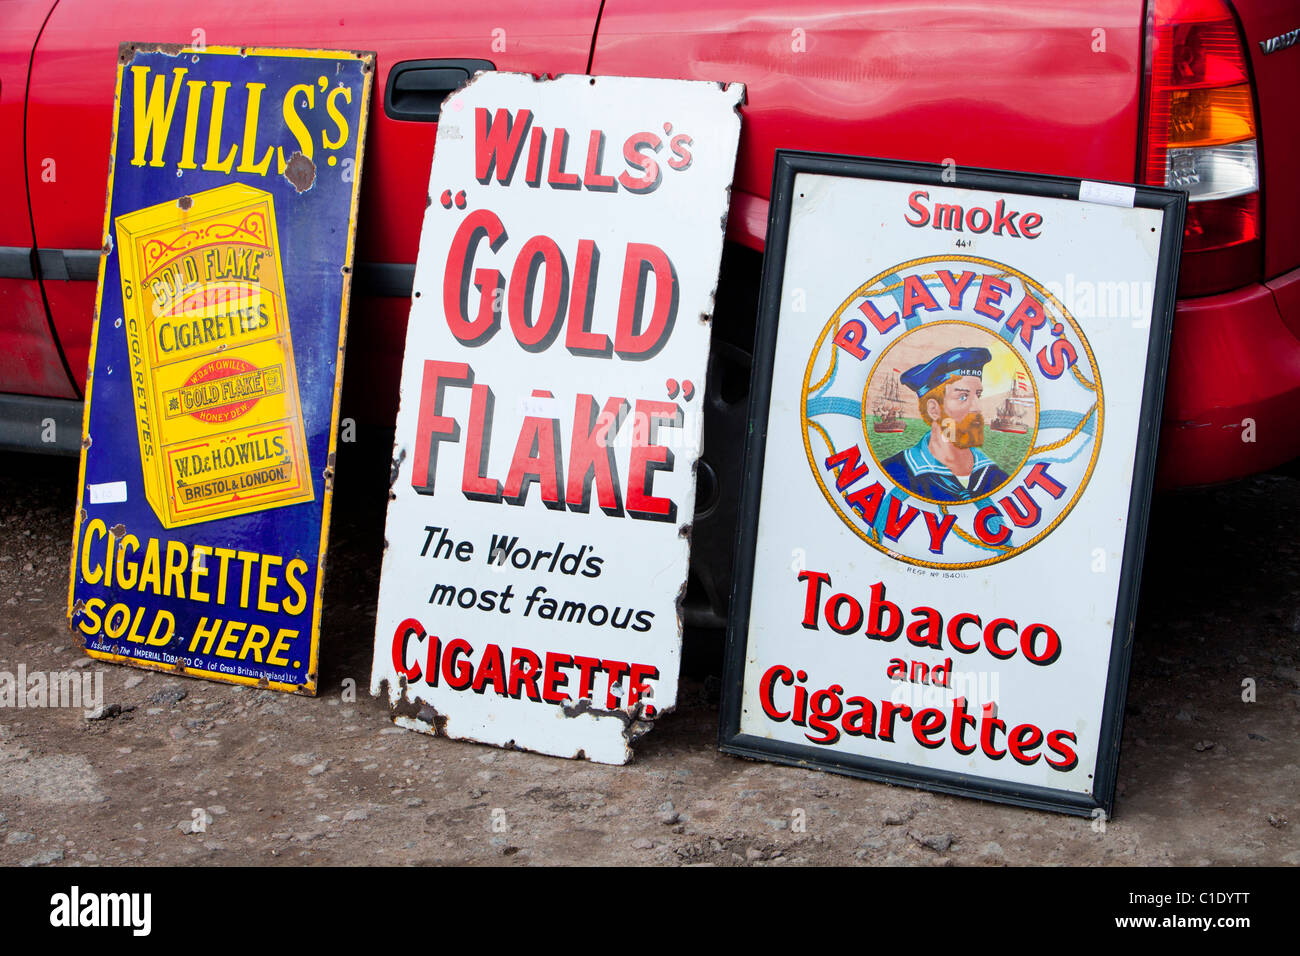 Old cigarette advertising signs. - Stock Image